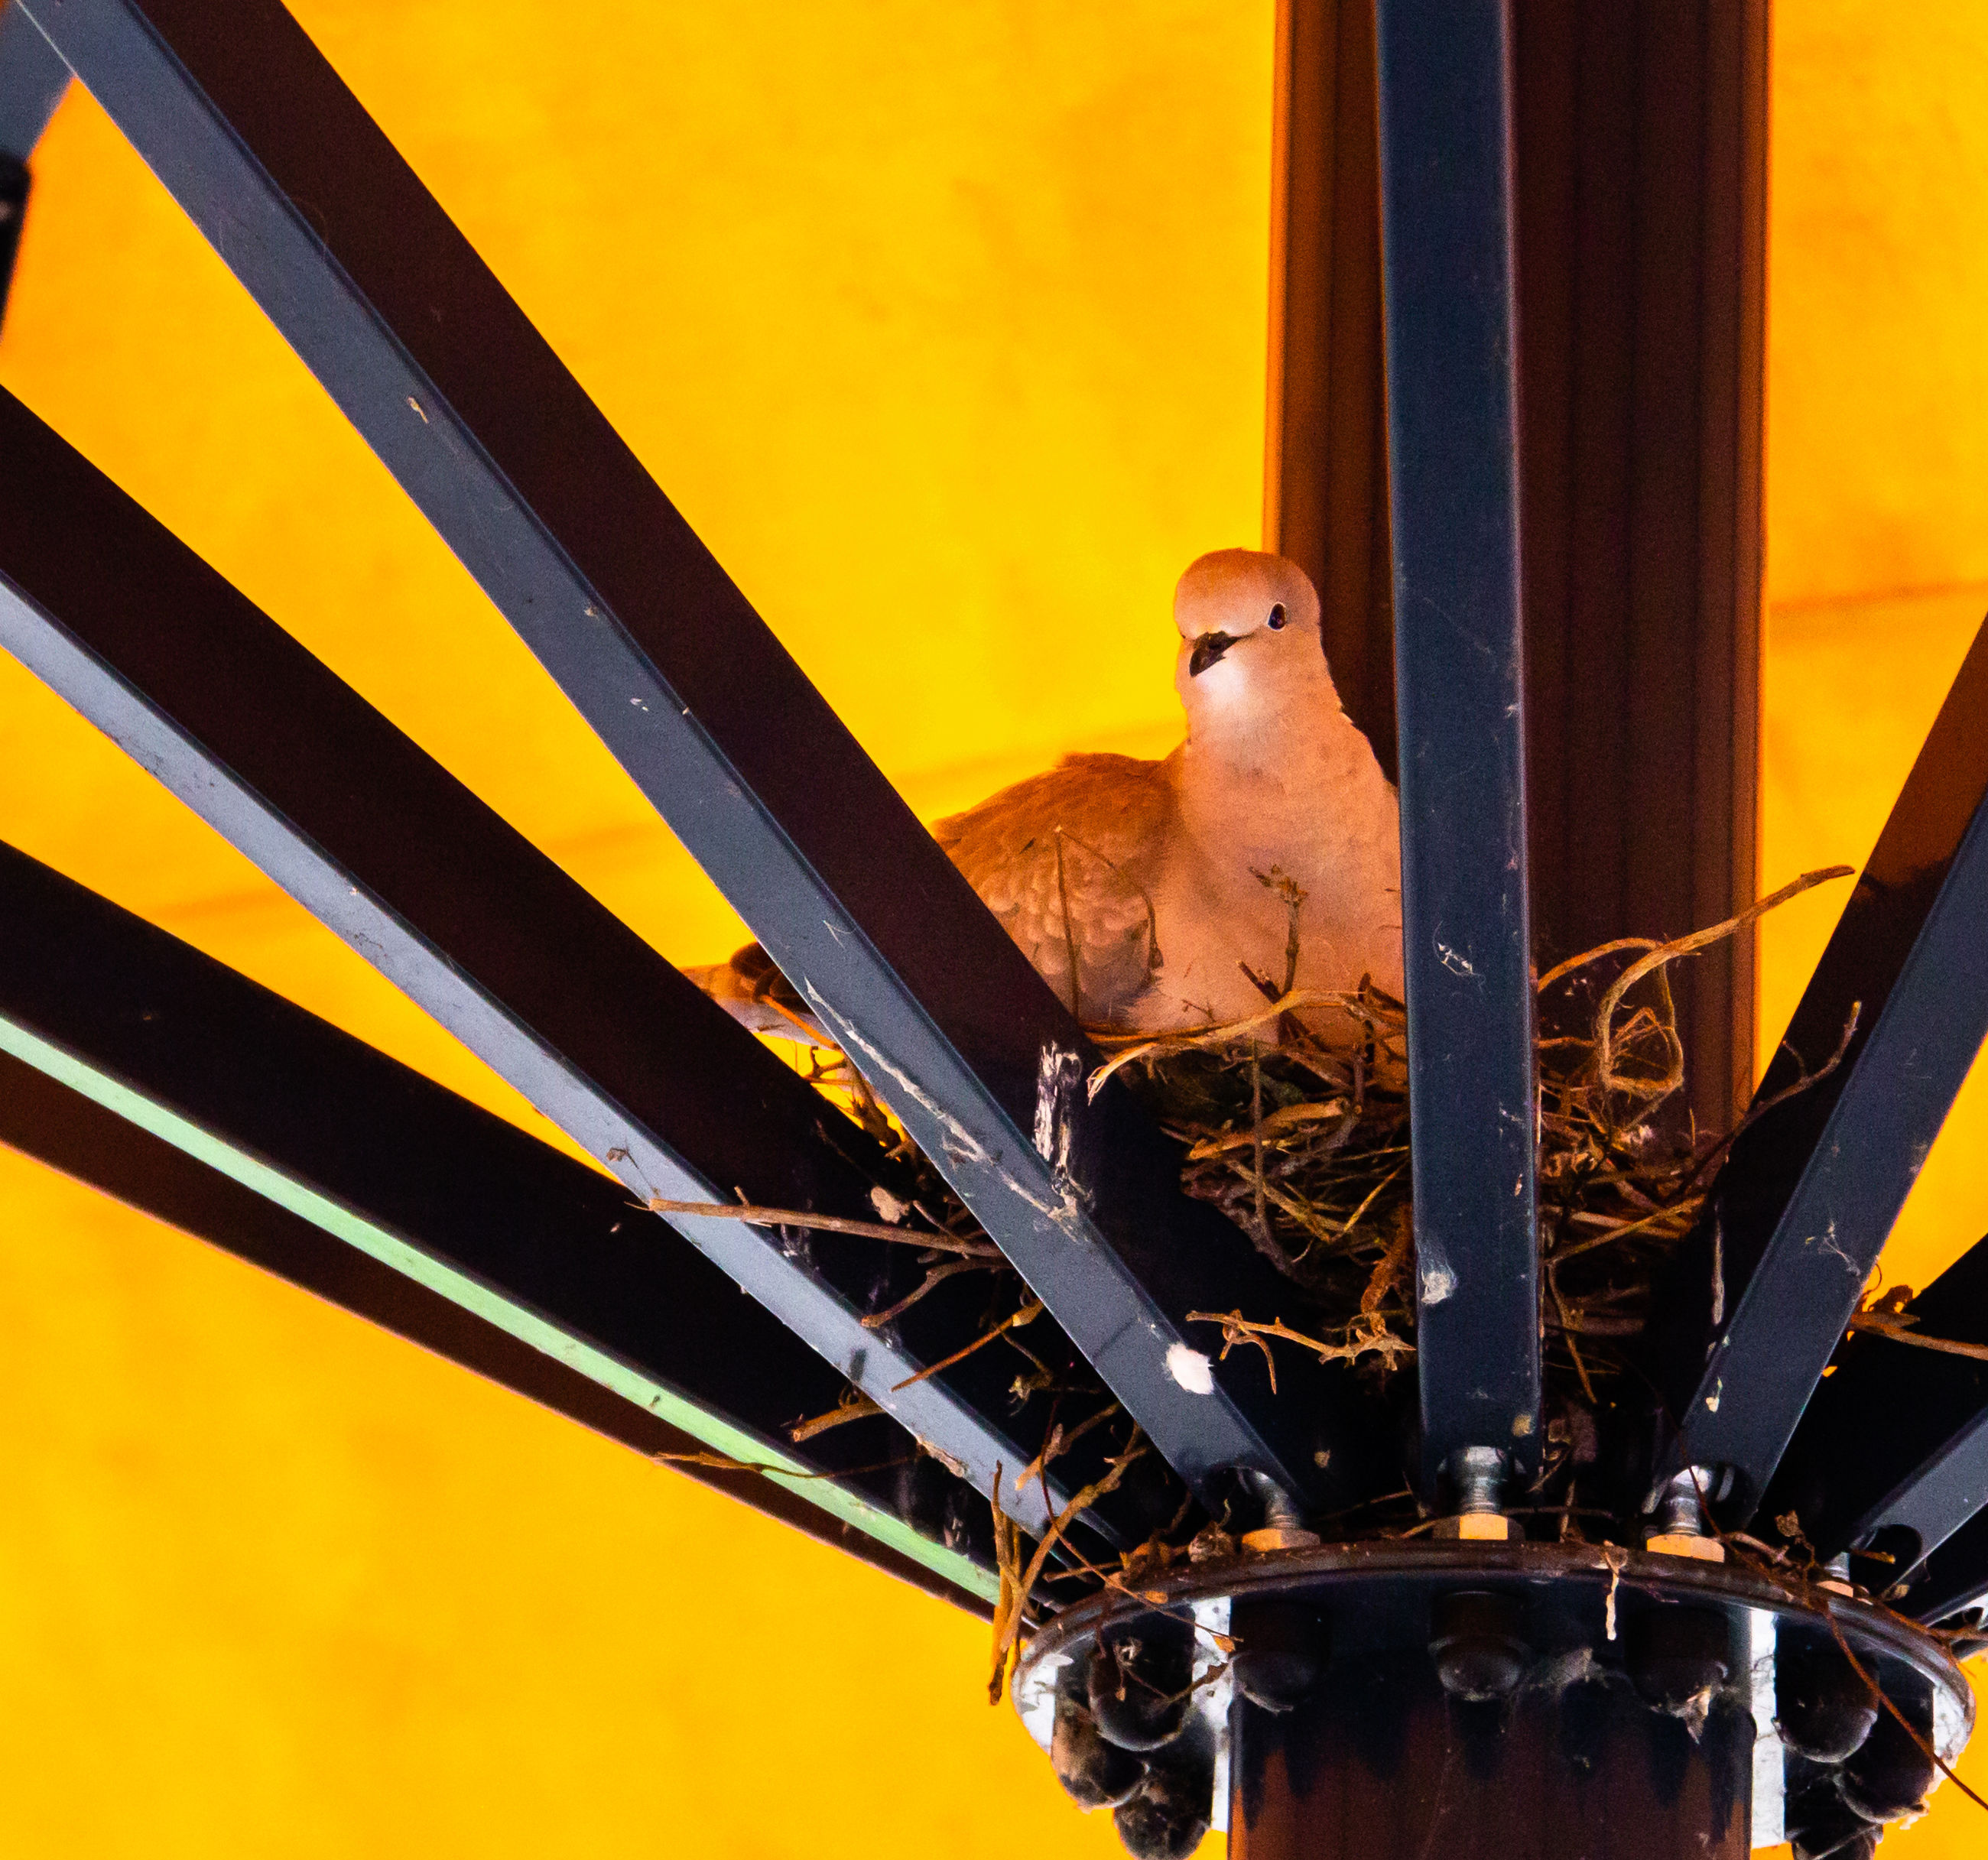 animal, animal themes, vertebrate, bird, one animal, no people, animal wildlife, animals in the wild, focus on foreground, perching, day, close-up, window, yellow, outdoors, low angle view, nature, orange color, glass - material, metal